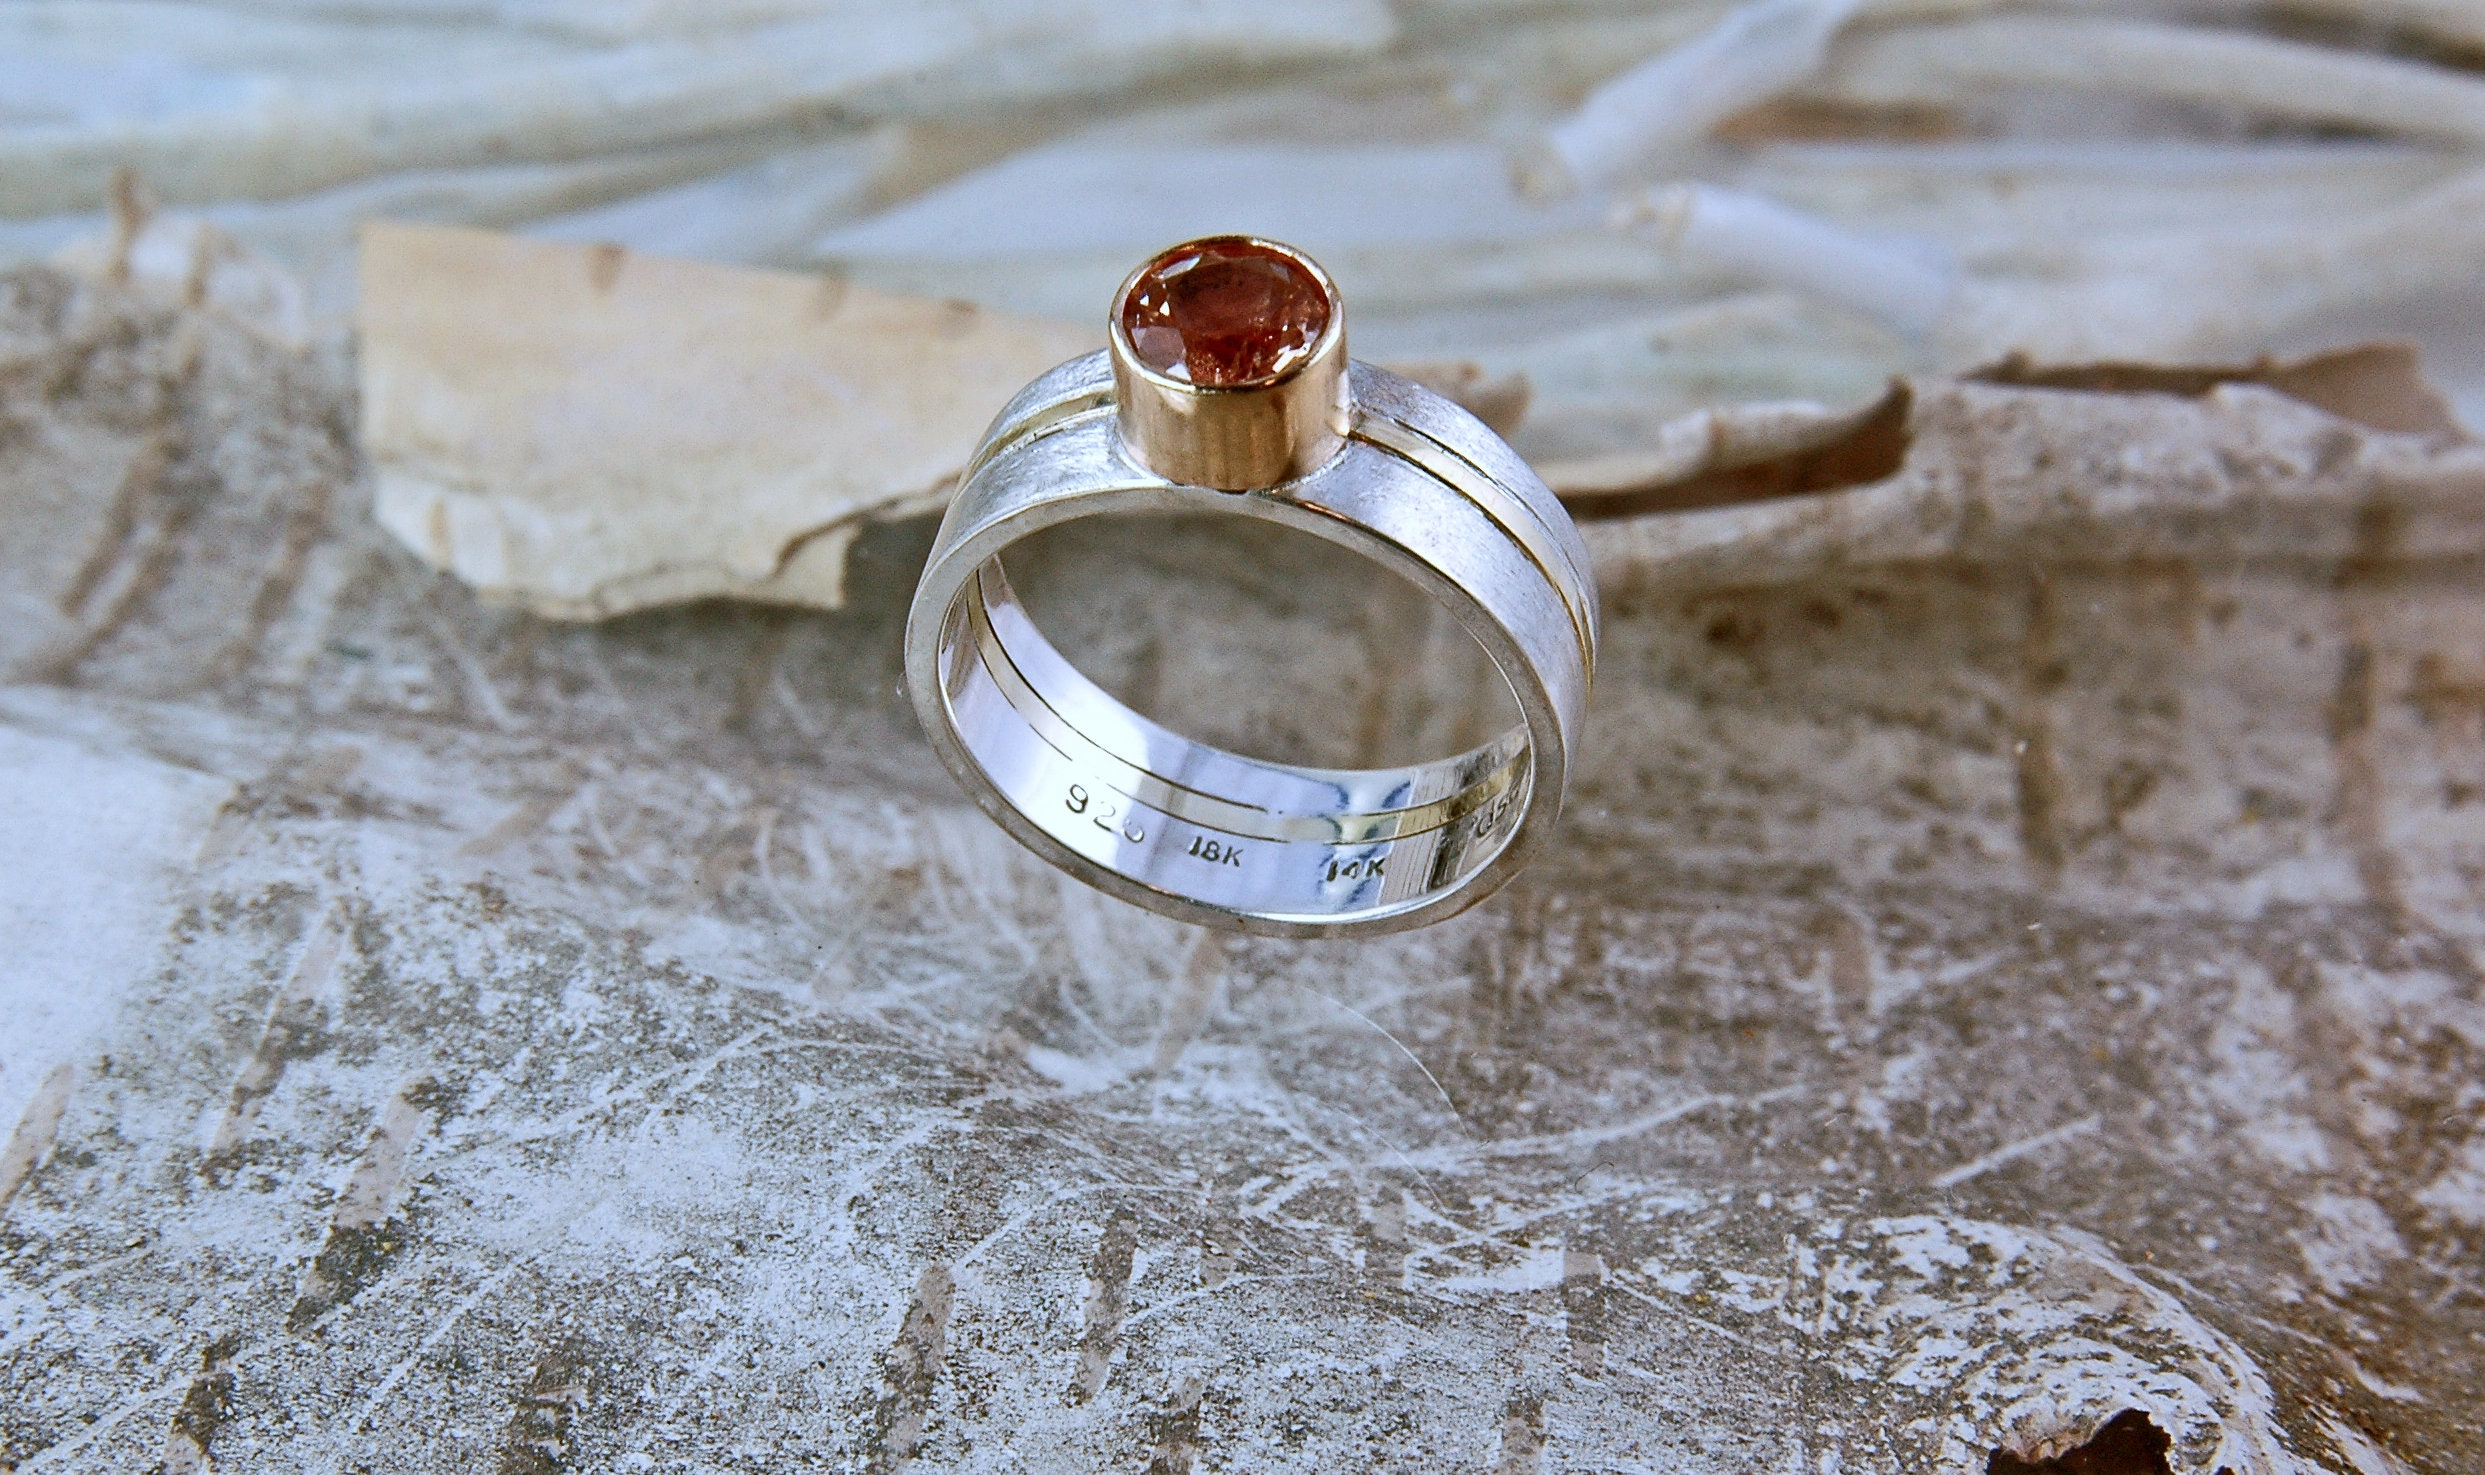 sunstone rosado diamond cushion halo oregon sapphire rings s rosados wedding romani rose box stone gold set blue and diamonds christie classic sun engagement